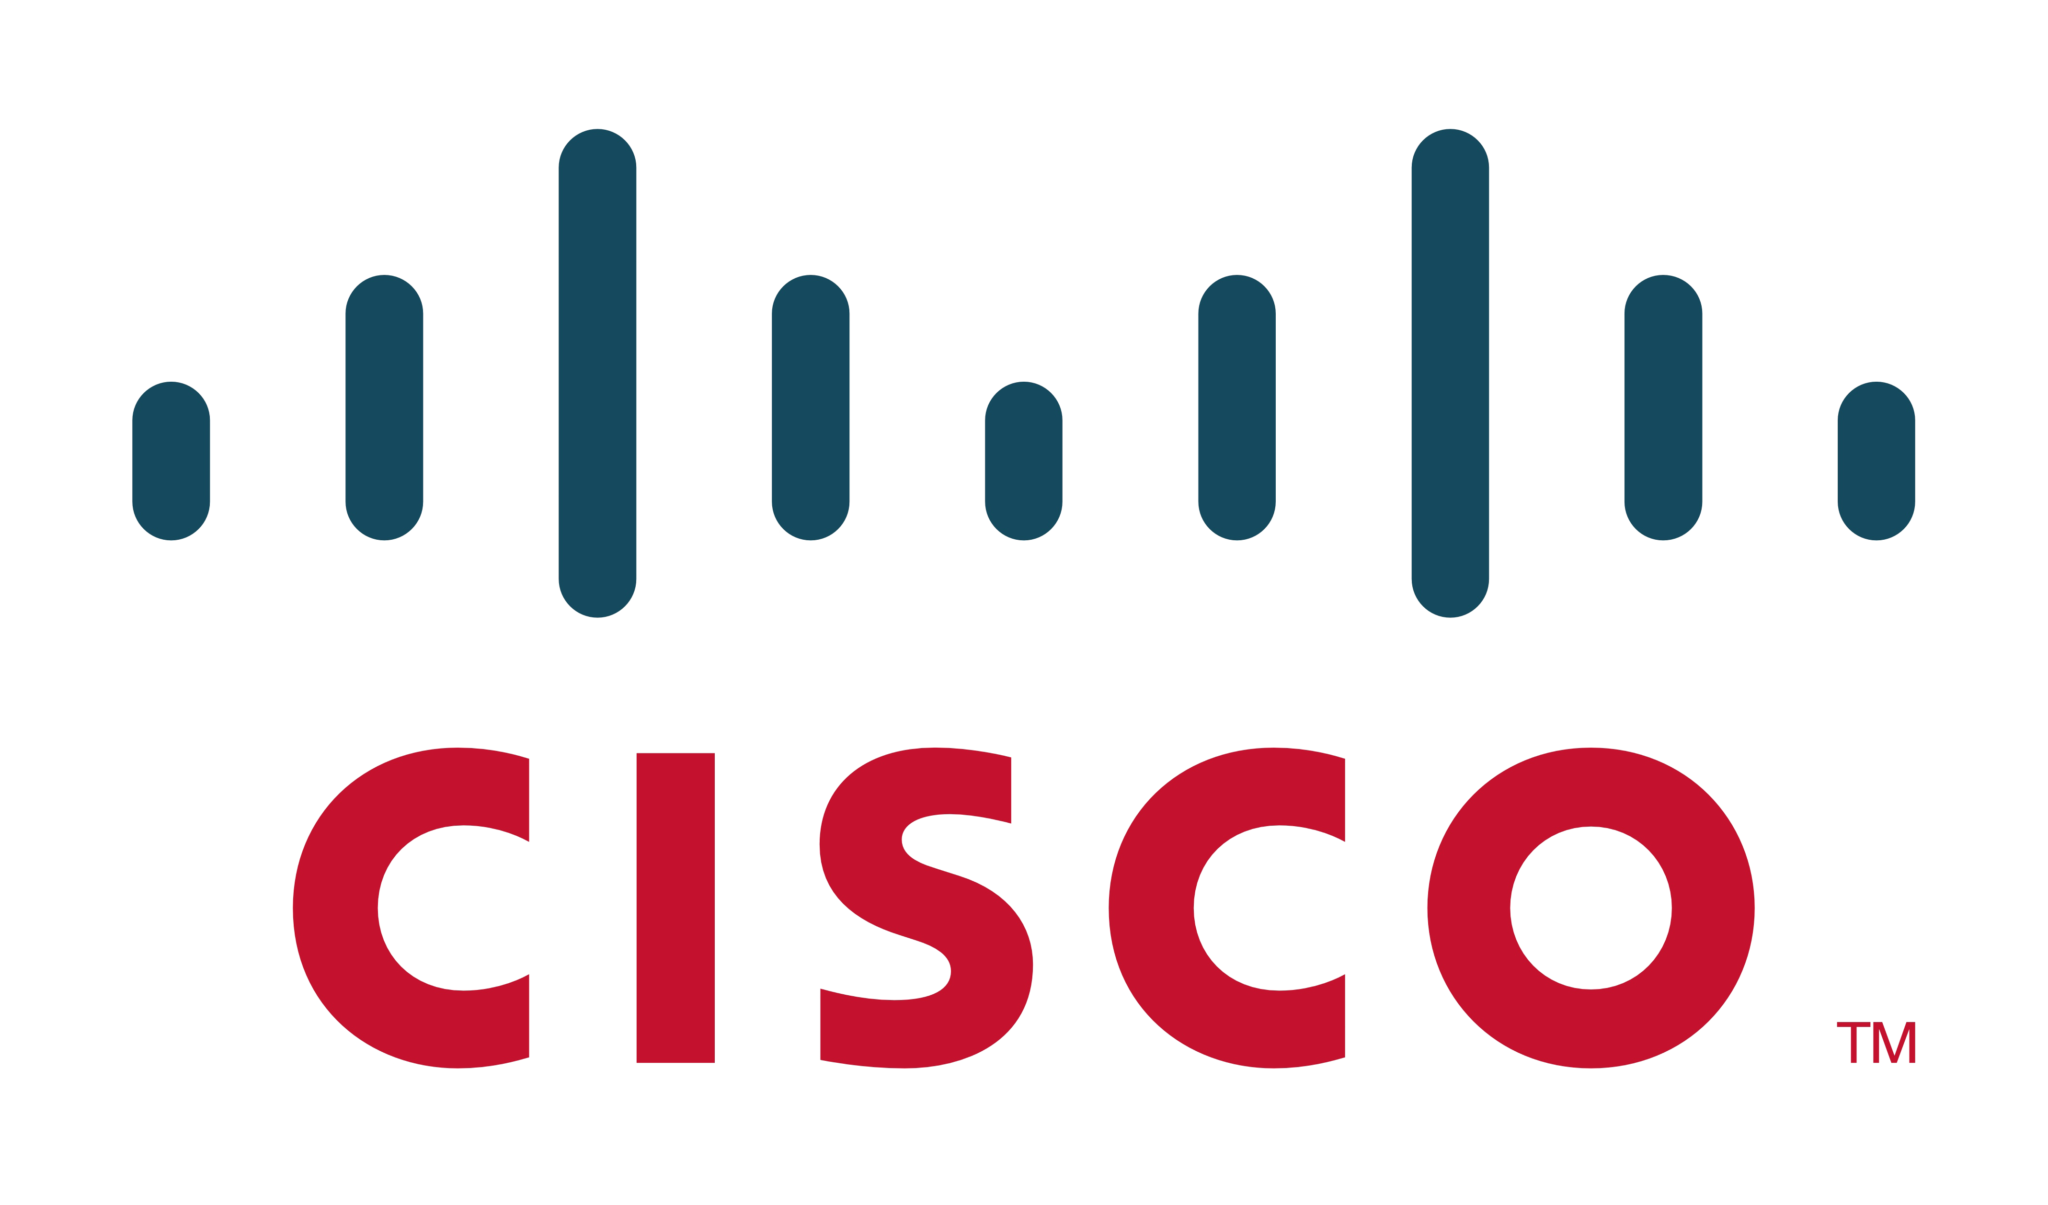 PNGPIX-COM-Cisco-Systems-Logo-PNG-Transparent - Copy